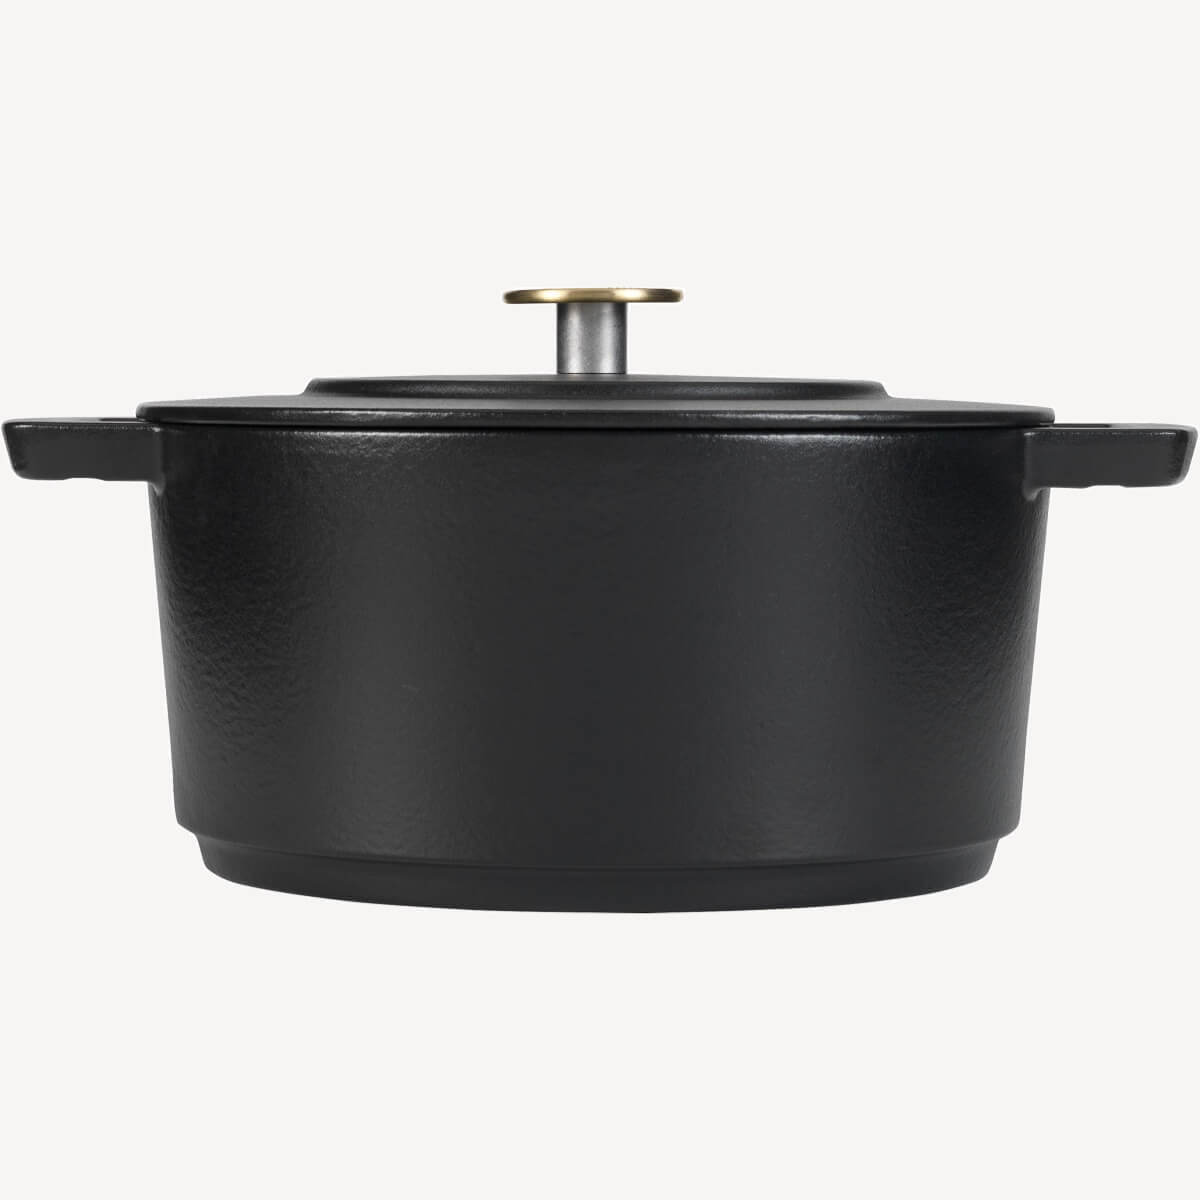 Dutch Oven De Librije Edition 24CM